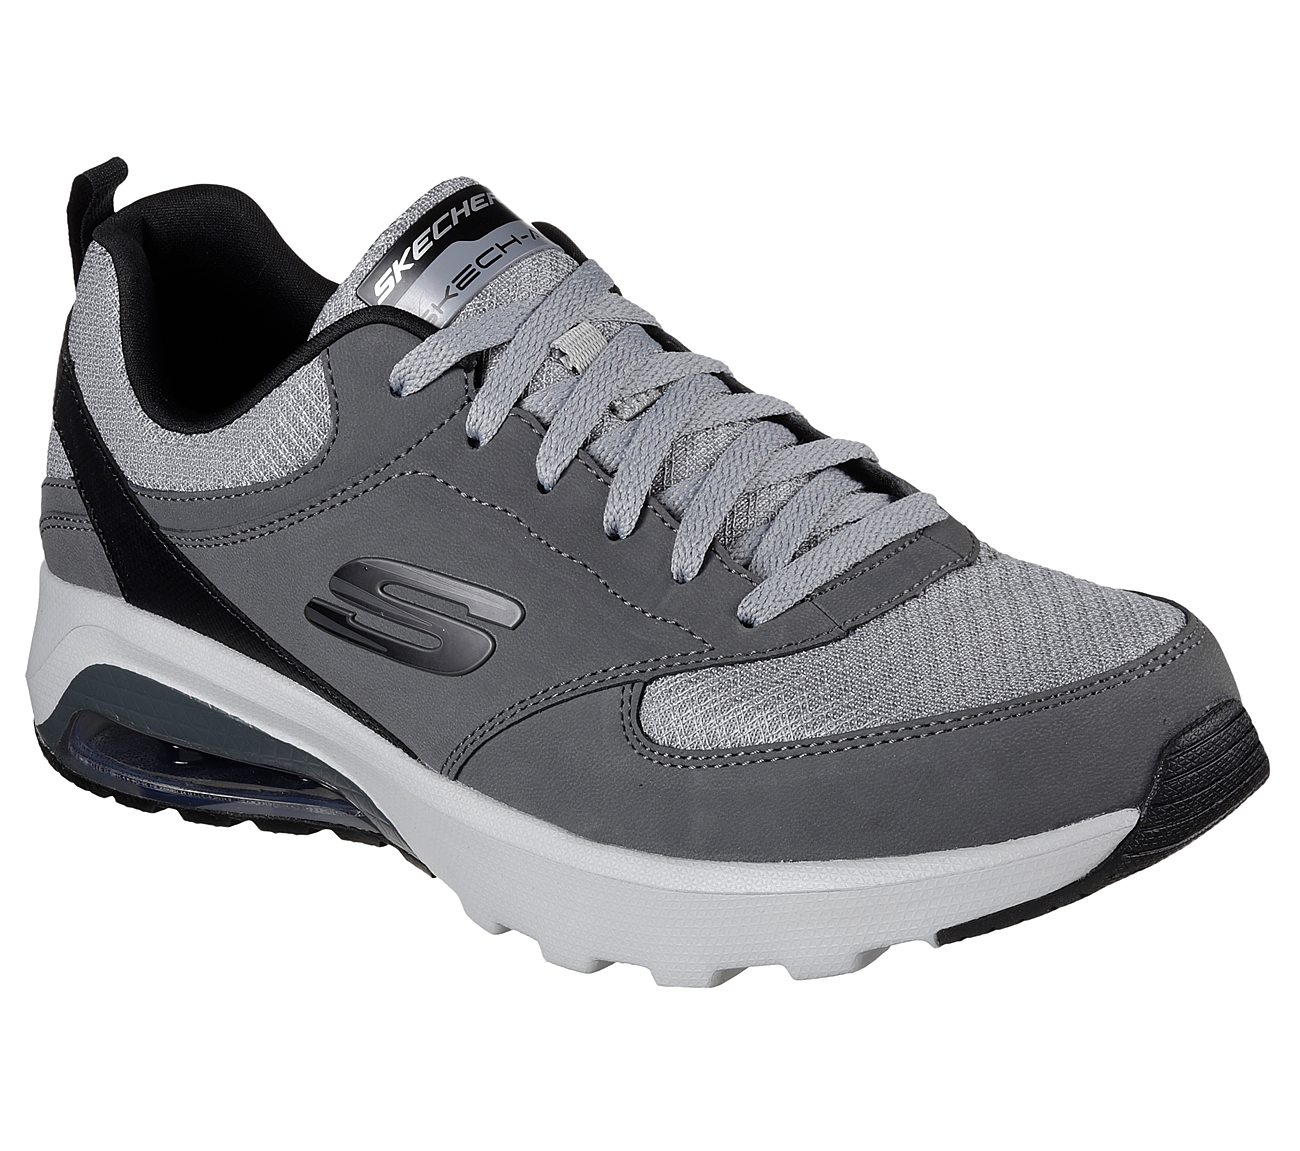 3520d590ee42 Buy SKECHERS Skech-Air Extreme - Emmerik Skech-Air Shoes only  75.00